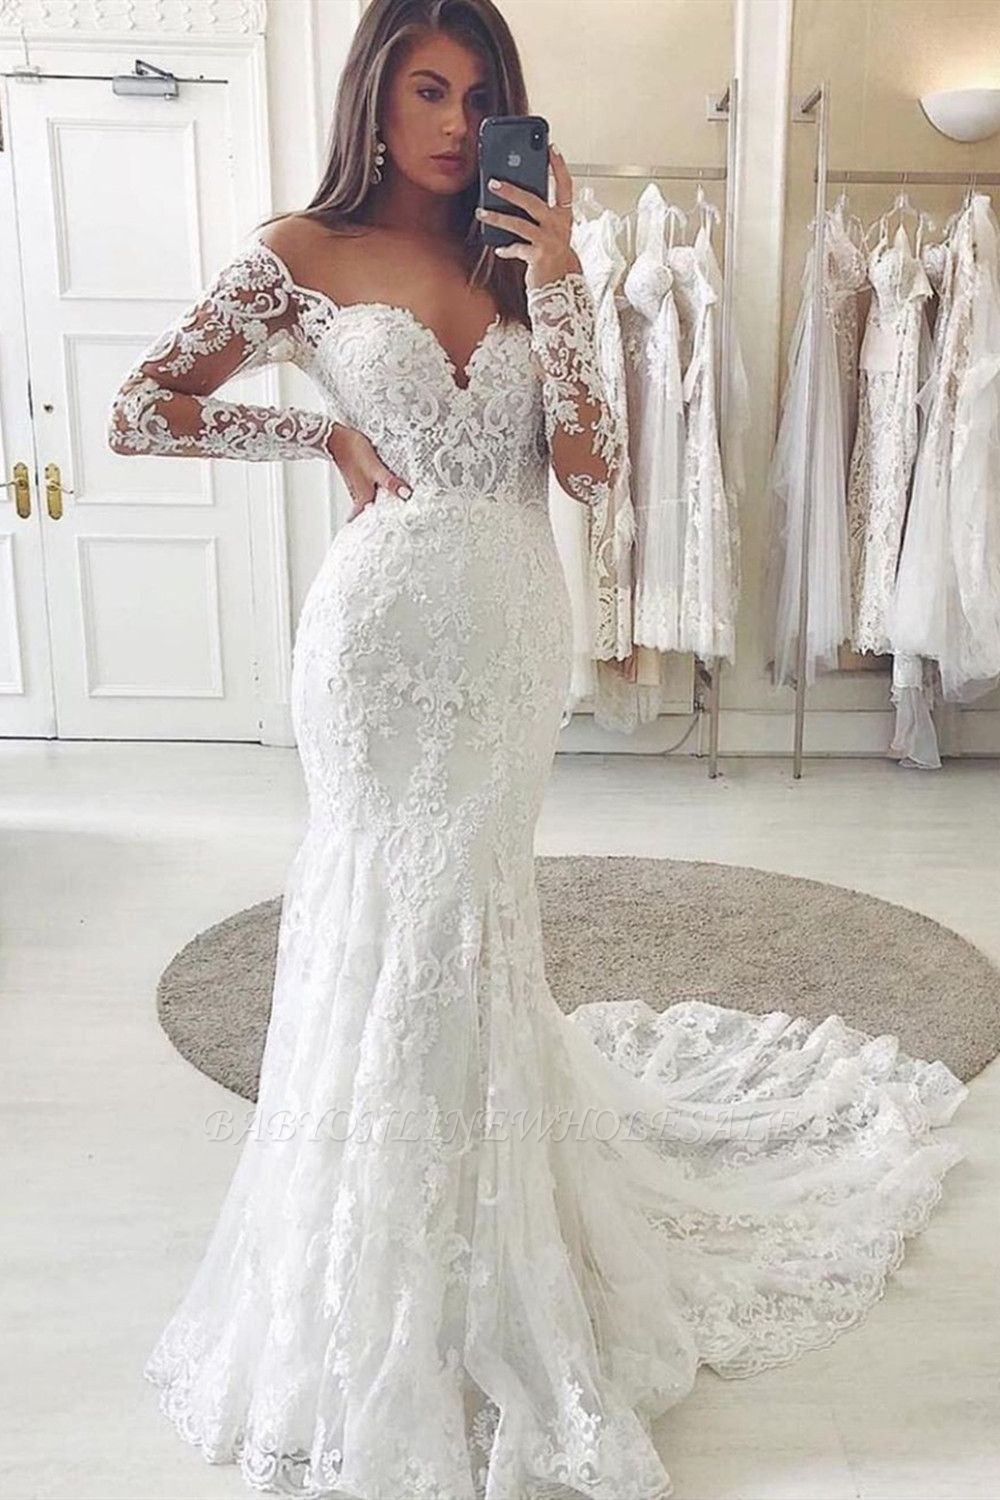 Charming Lace Appliques Mermaid Wedding Gown Long Sleeve Sweetheart Bridal Dress